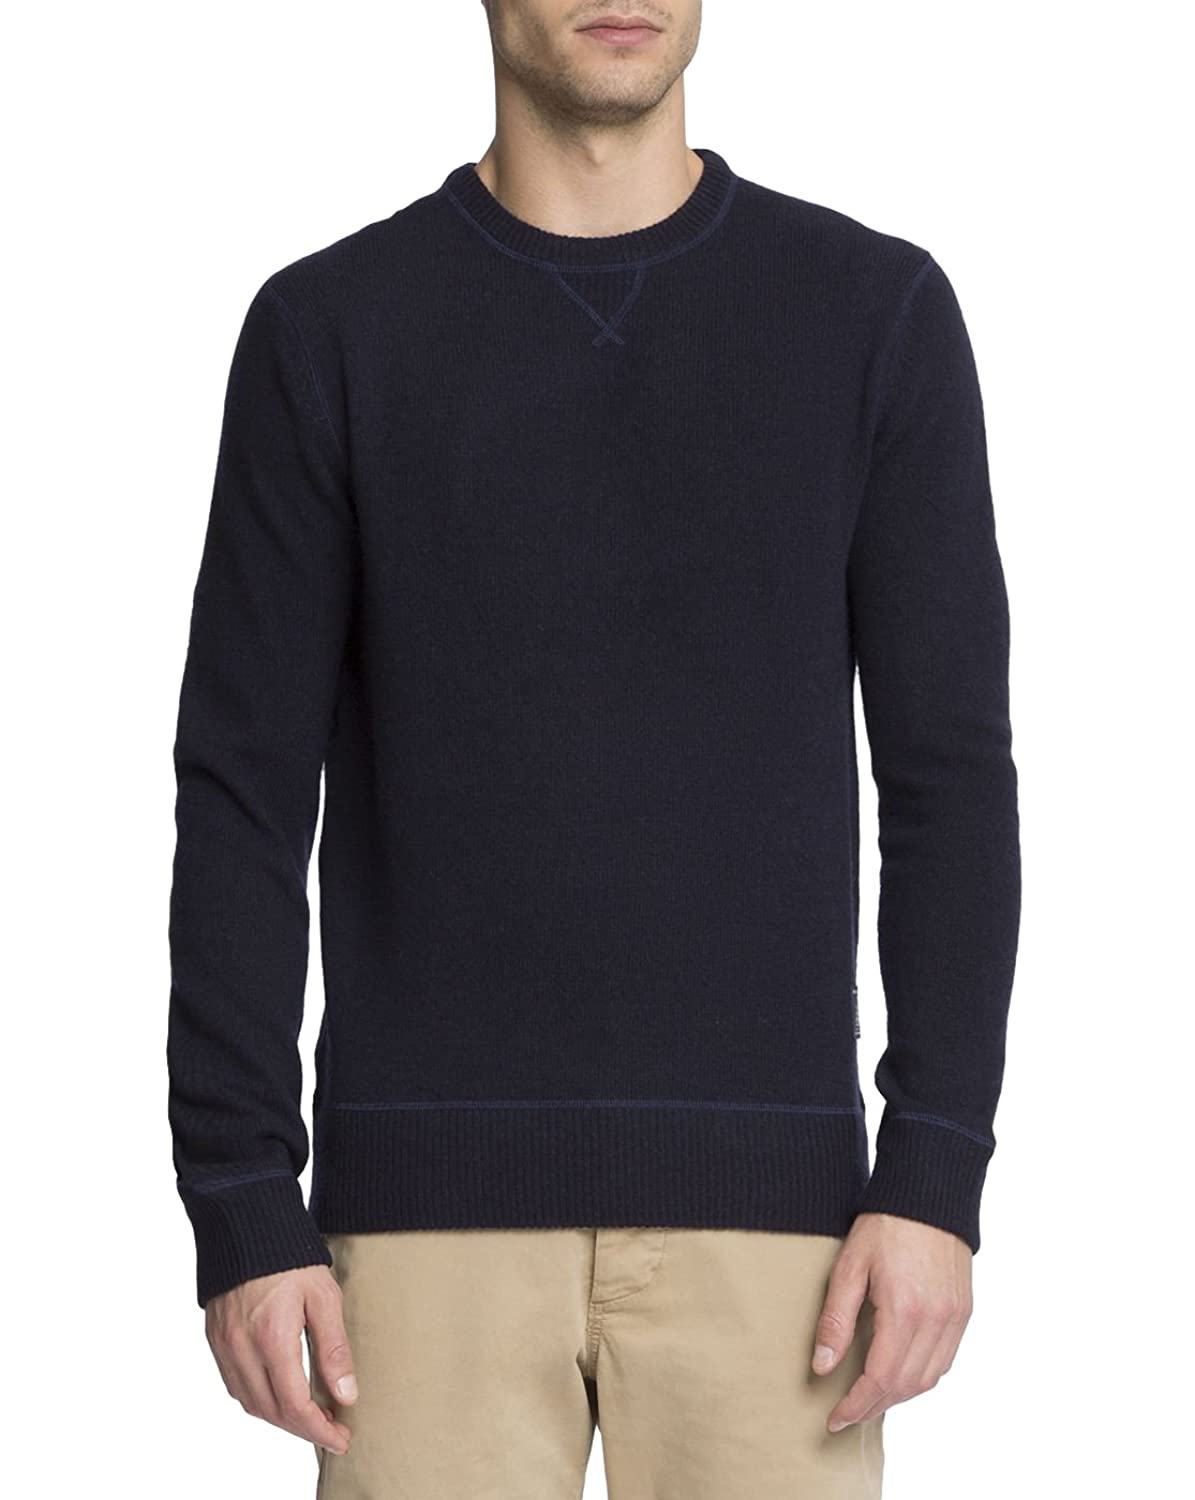 SCOTCH AND SODA - Crew-neck Sweaters - Men - Blue Wool Grey Contrast Stitch Jumper for men